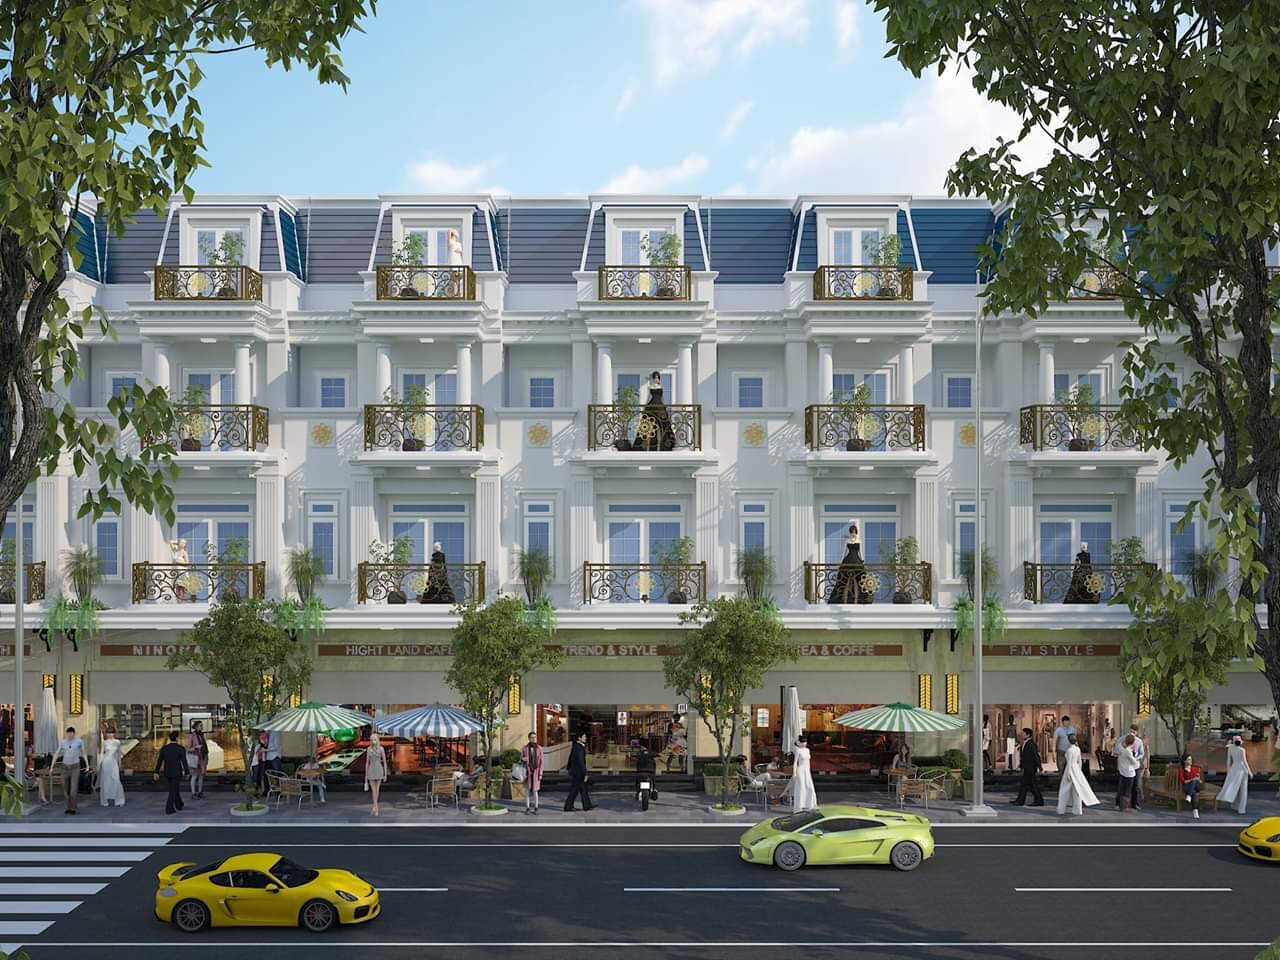 du-an-nha-pho-ruby-boutique-residences